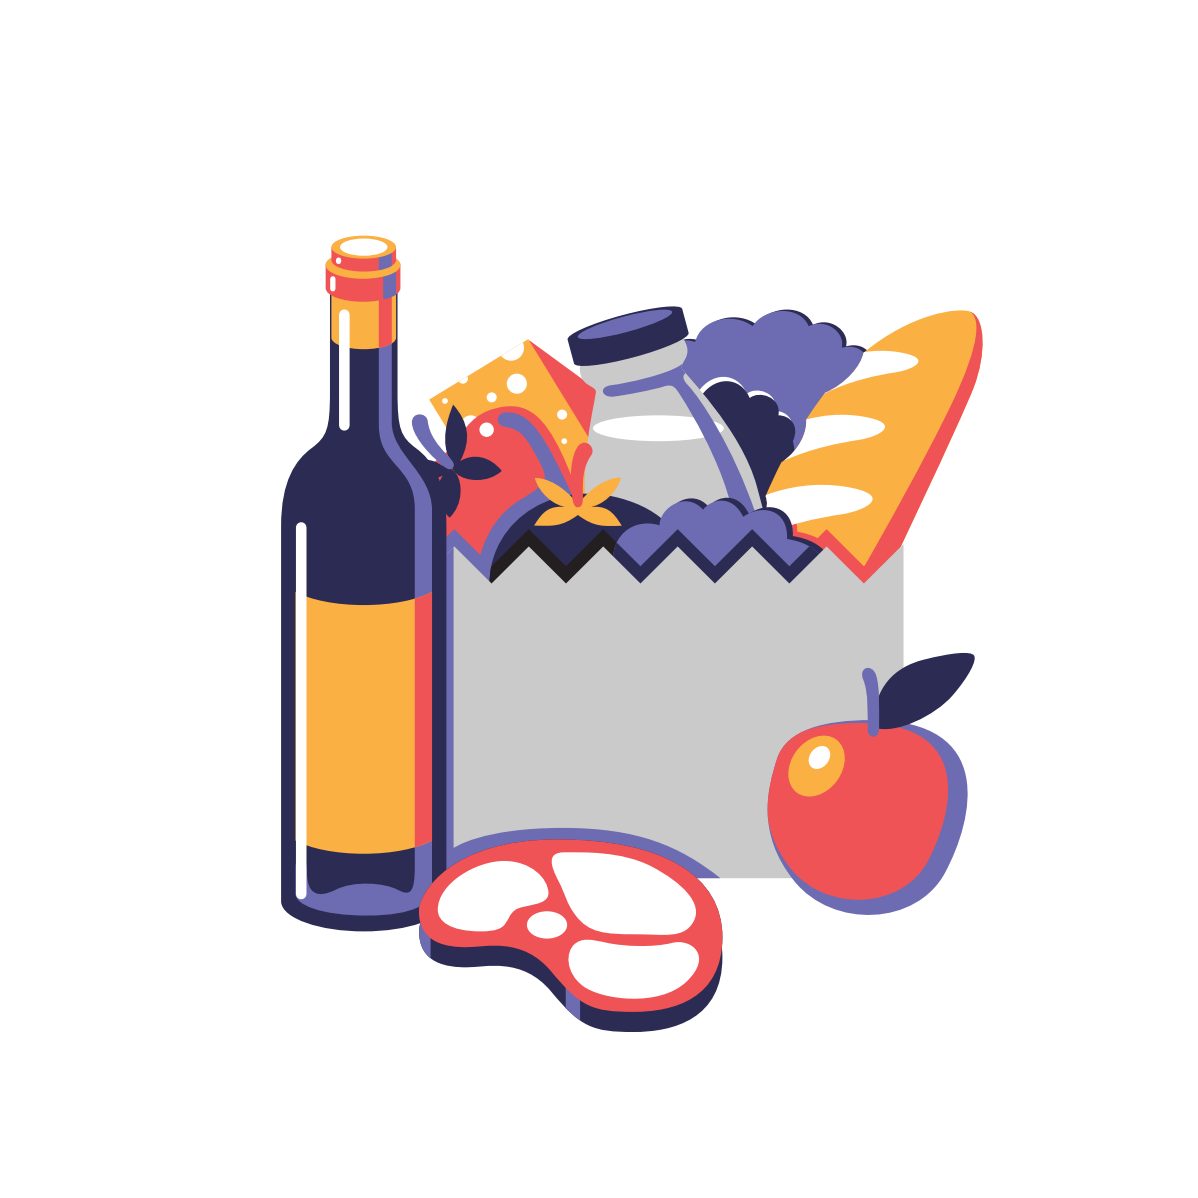 Icons and illustrations design